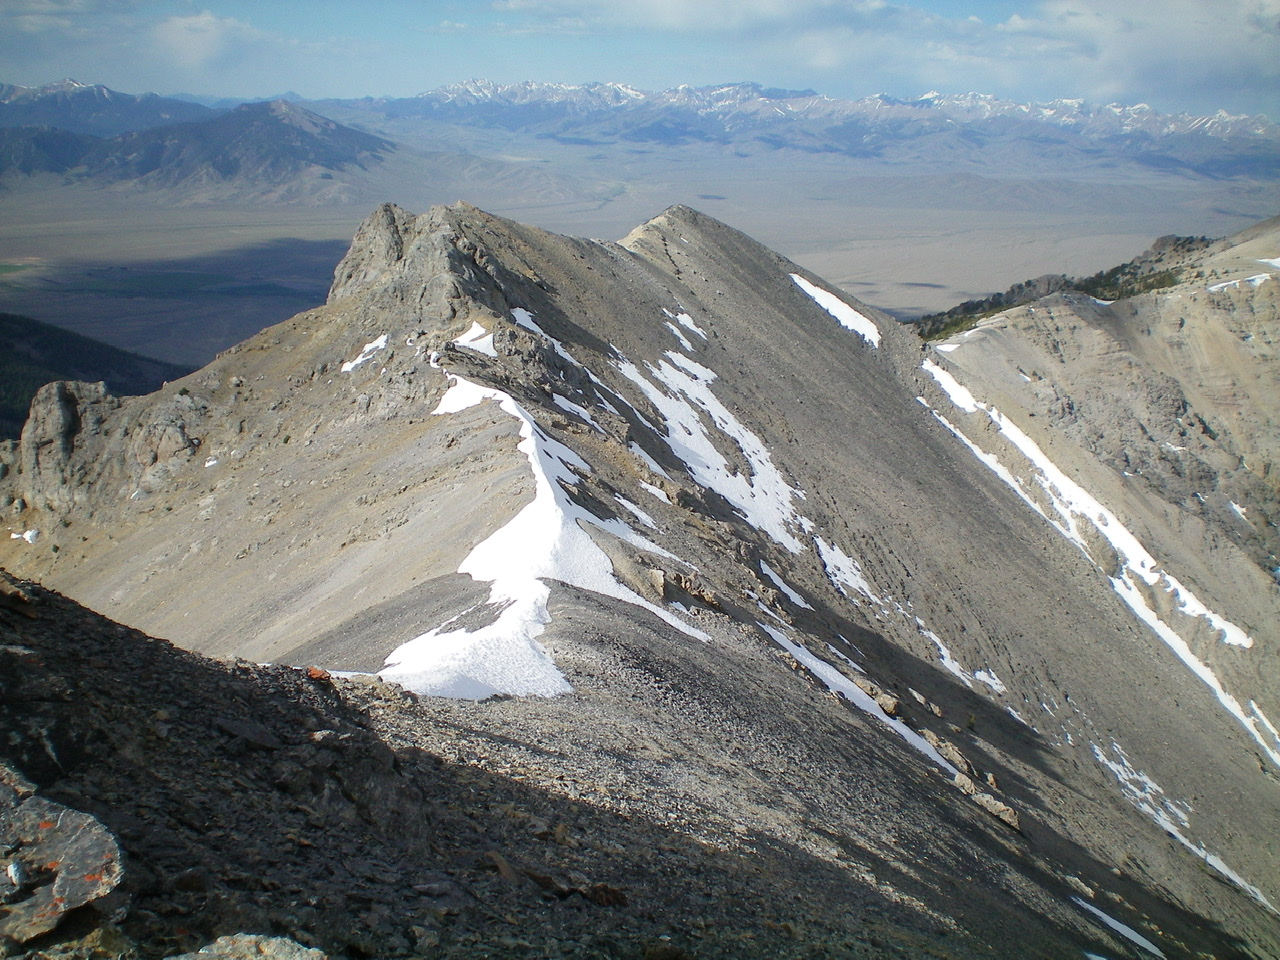 A look back at the Southwest Ridge and Southwest Summit of Medusa, from the true summit. Notice the extensive ridge snow still lingering on the Southwest Ridge in early July. Livingston Douglas Photo